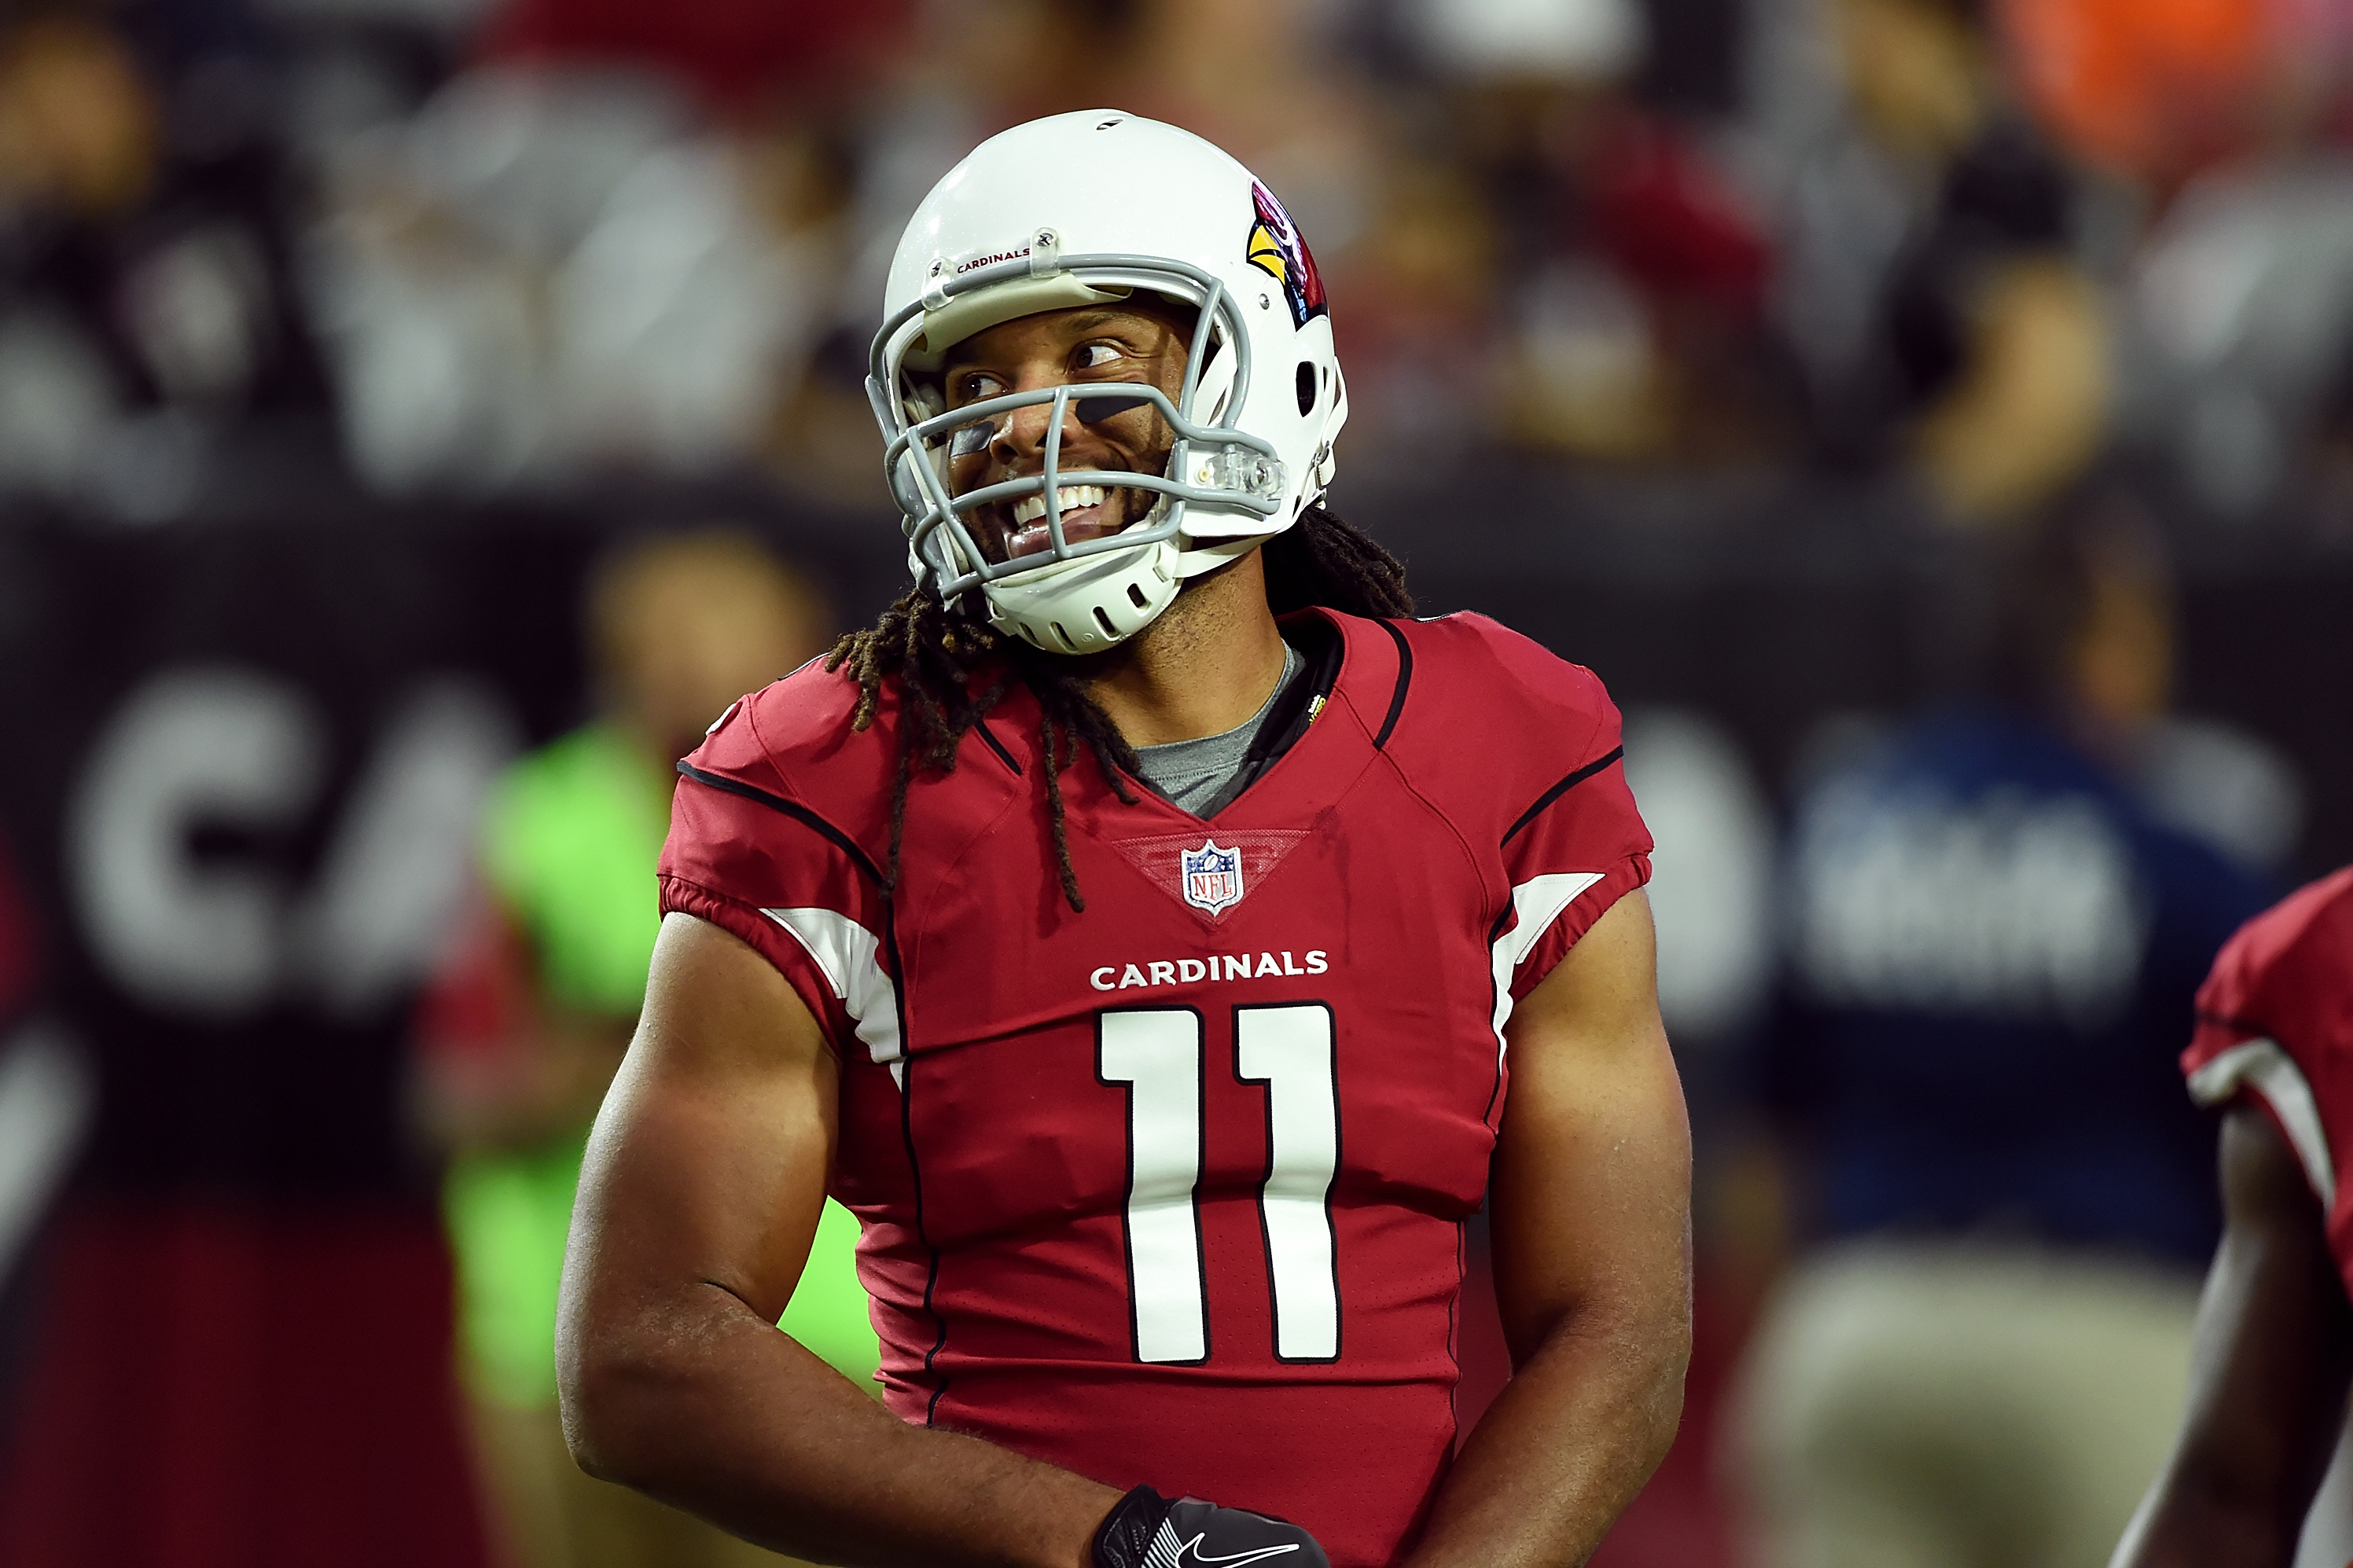 a471deec Larry Fitzgerald Asks Defenders Not to Hit Low, Will Pay Fines, Says ...